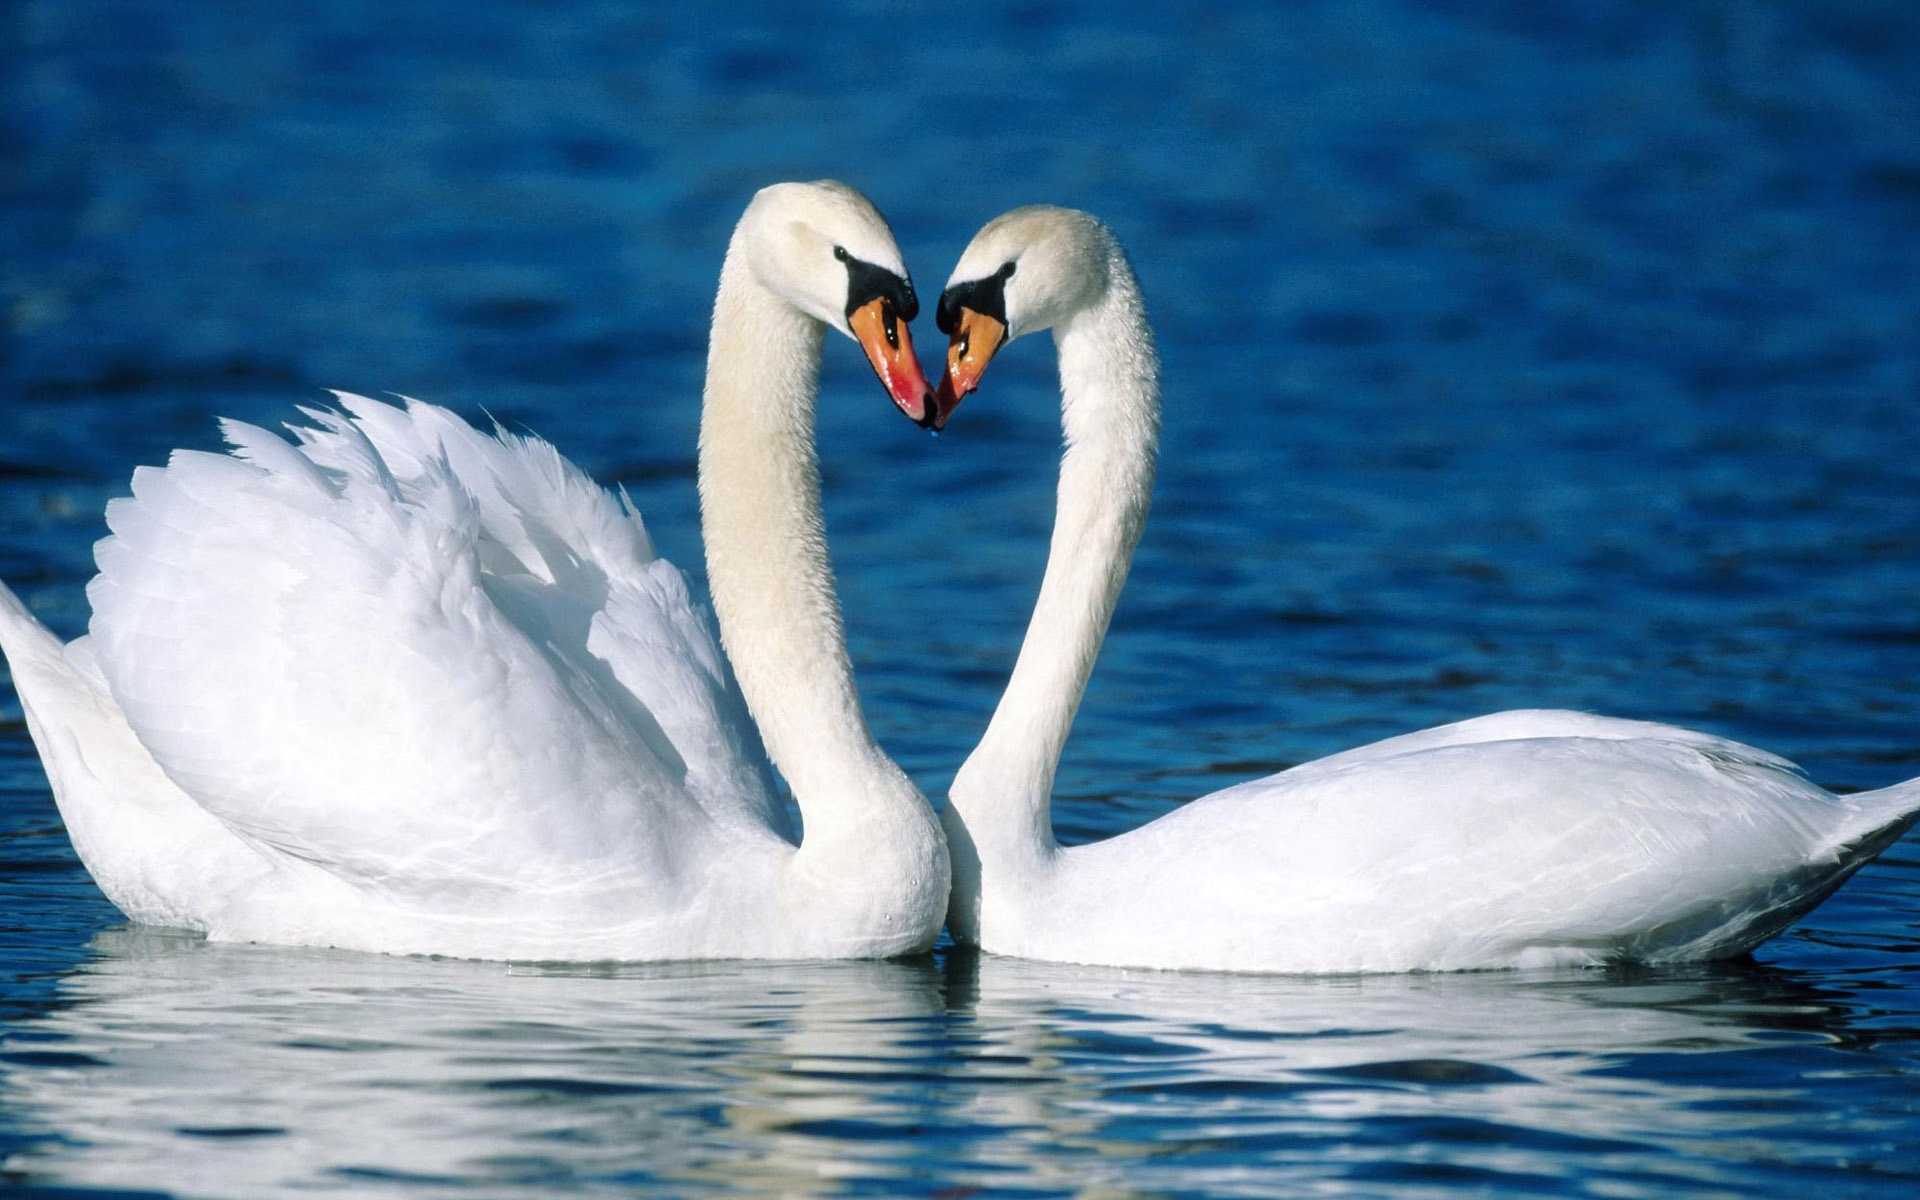 Two-white-swans-on-the-water_1920x1200.jpg